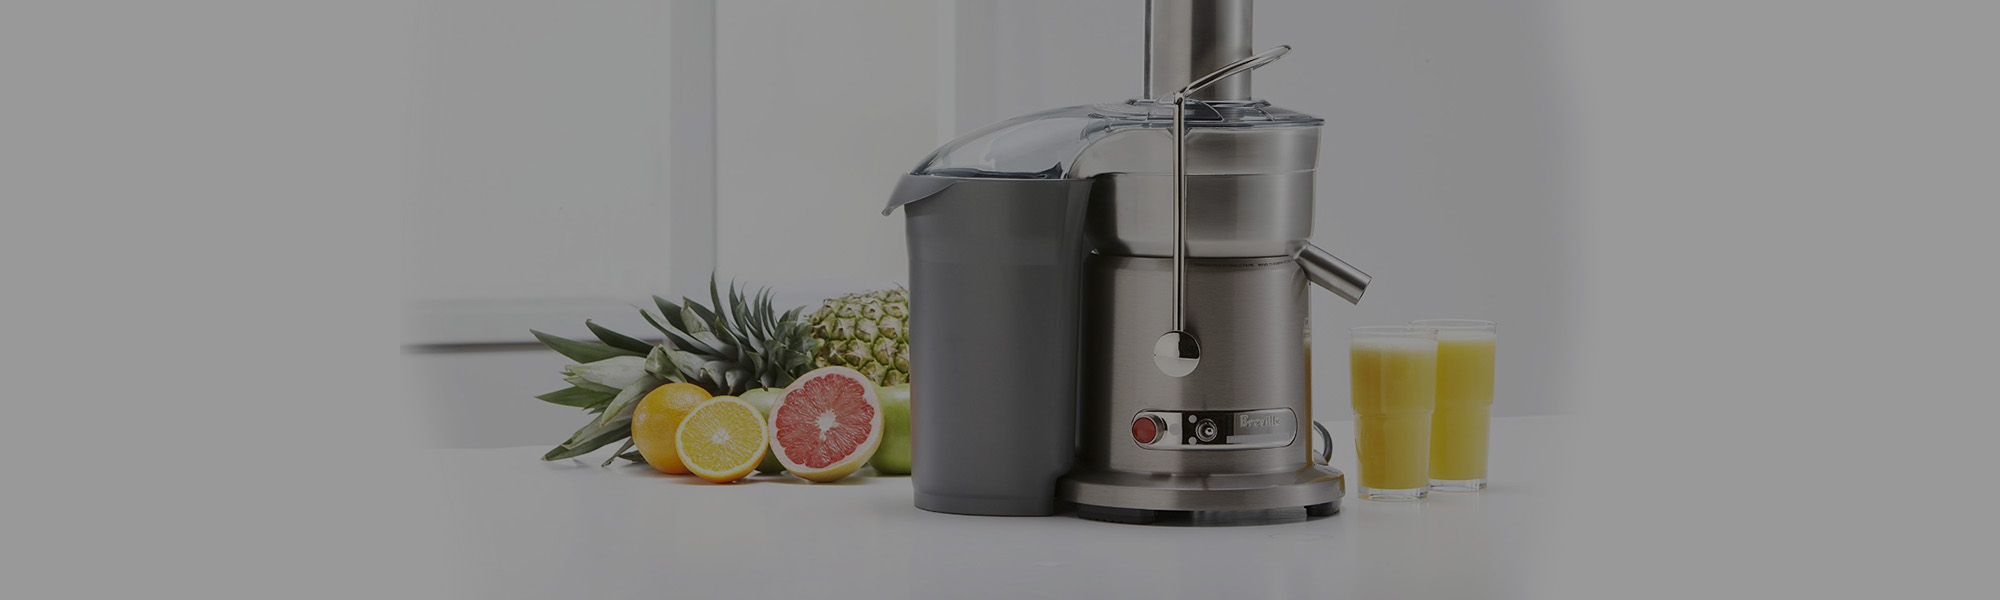 Hamilton Beach<br>Big Mouth Juice Extractor